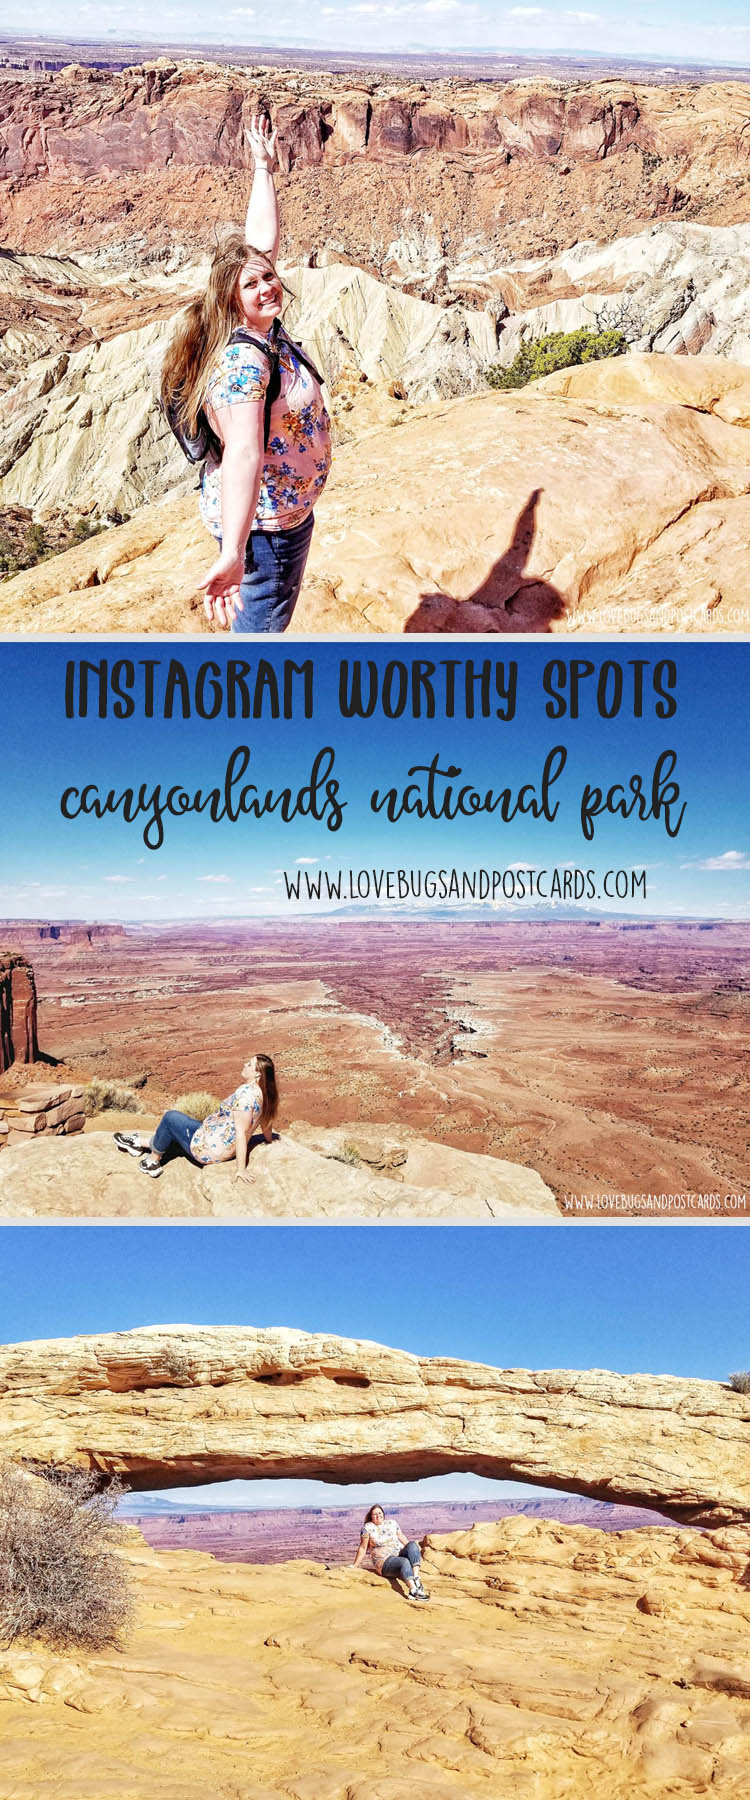 Instagram worthy spots in Canyonlands National Park (Island in the Sky)